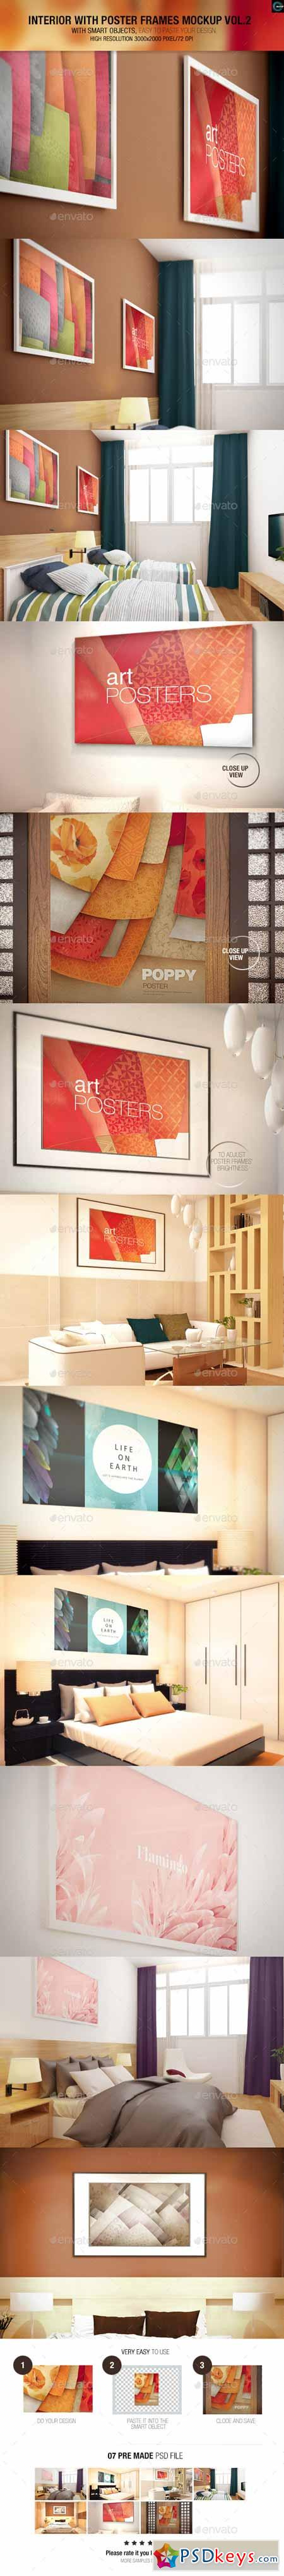 Interior With Poster Frames Mock-up Vol.2 9854757